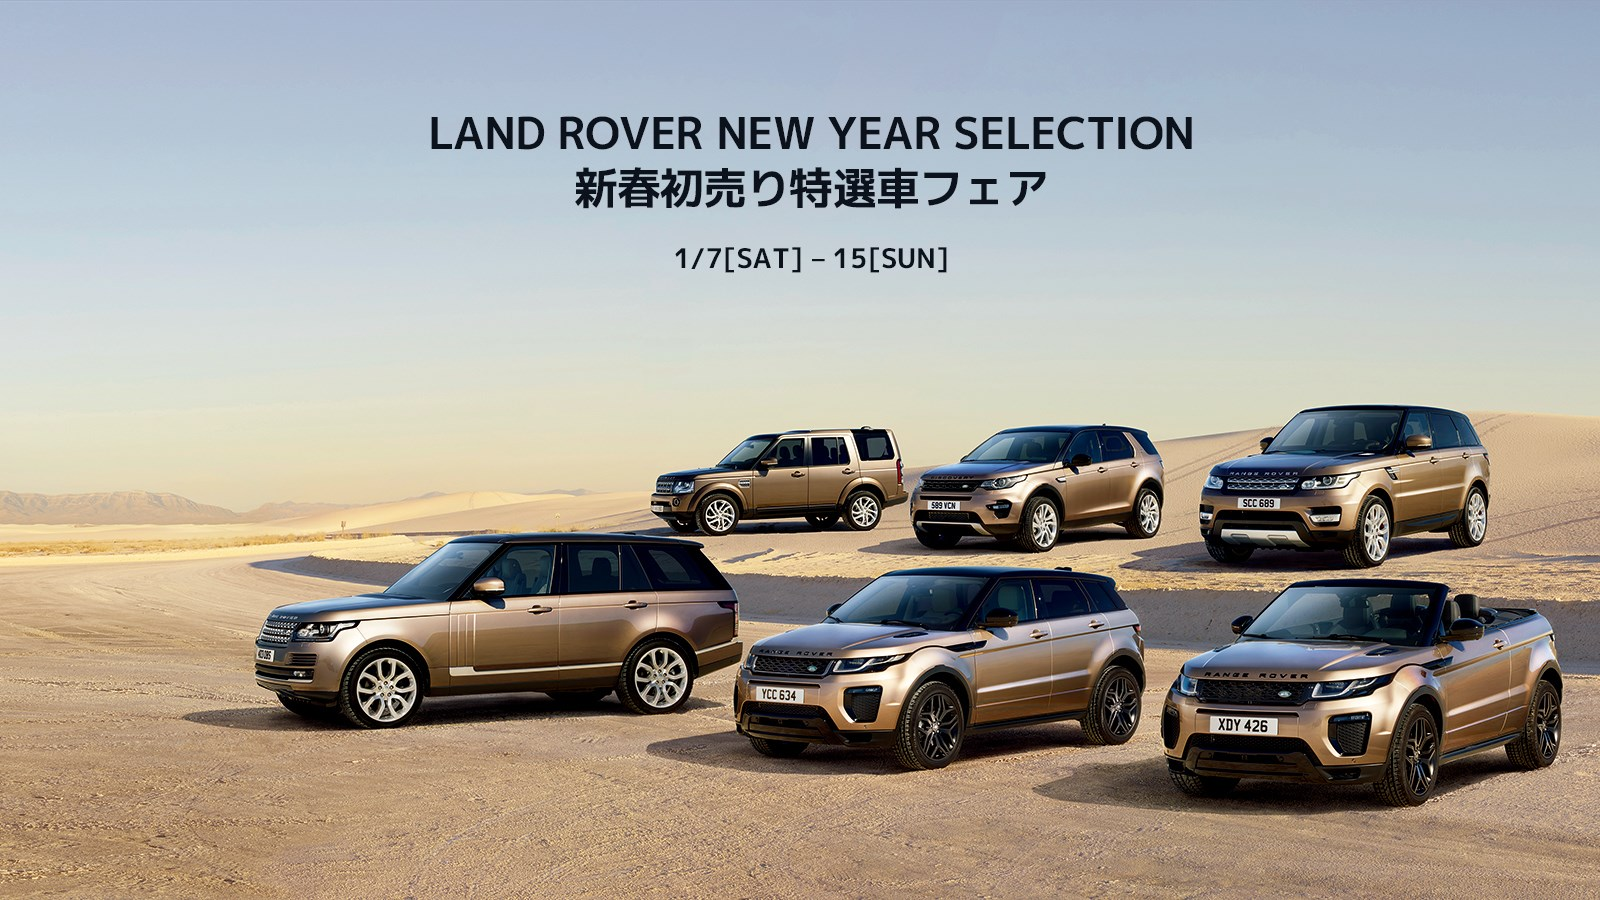 170106landrover_new-year-fair-selection